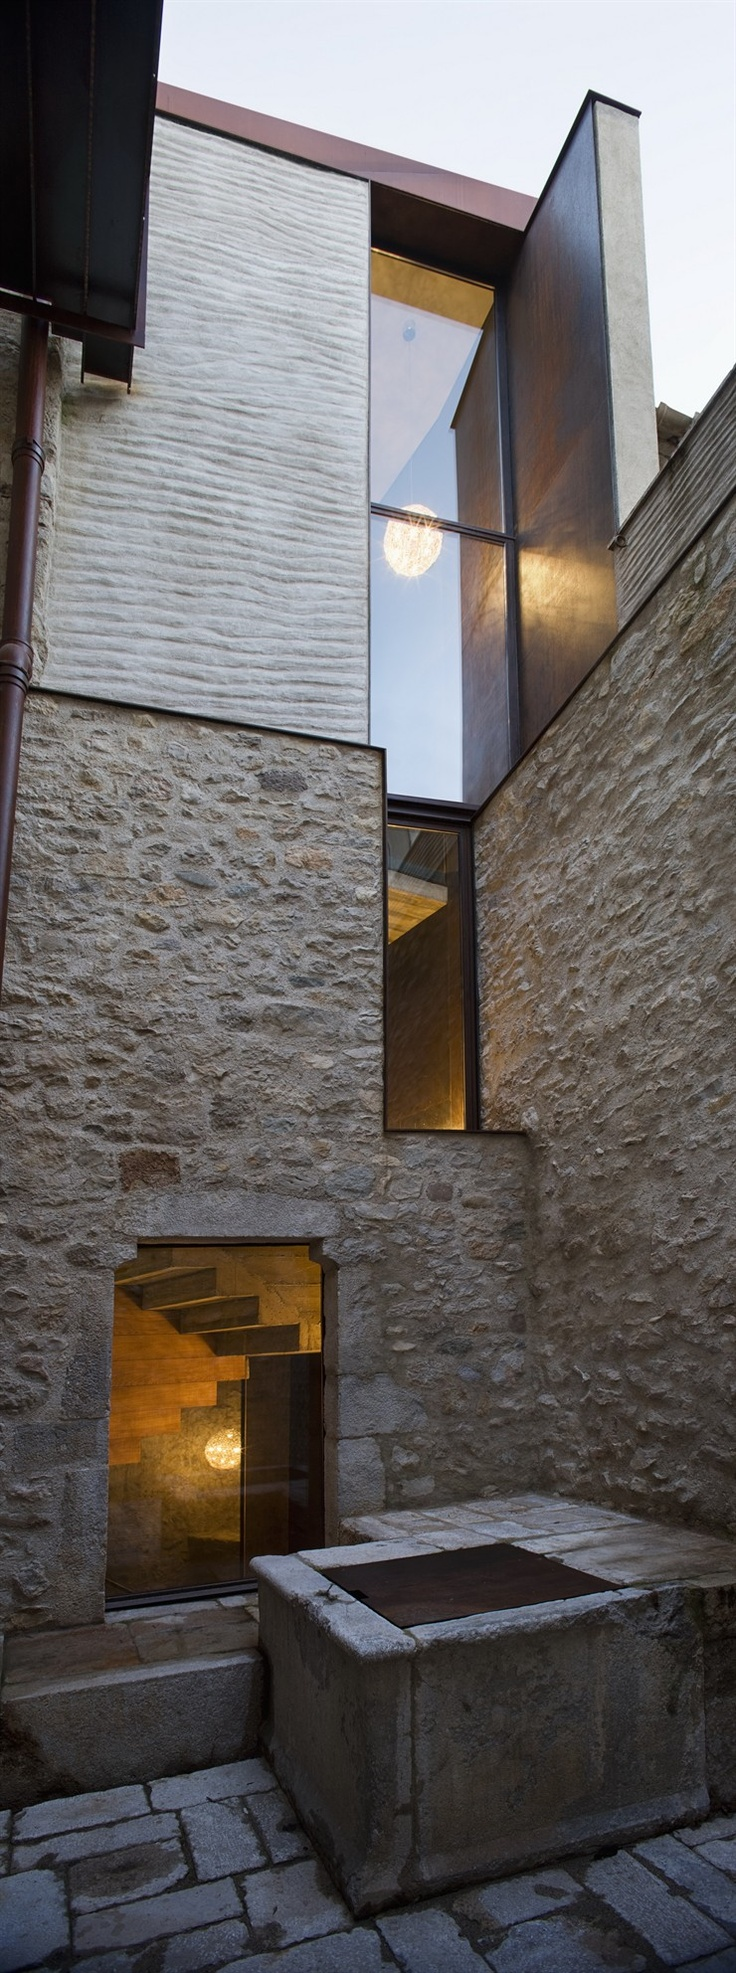 Alemanys 5 - Beautiful restoration in Girona, Spain by Anna Noguera ArchitectsPhotos Enric, Architects, Anna Noguera, Enric Duch, Noguera Nieto, Alemany, House, Architecture, Modern Home